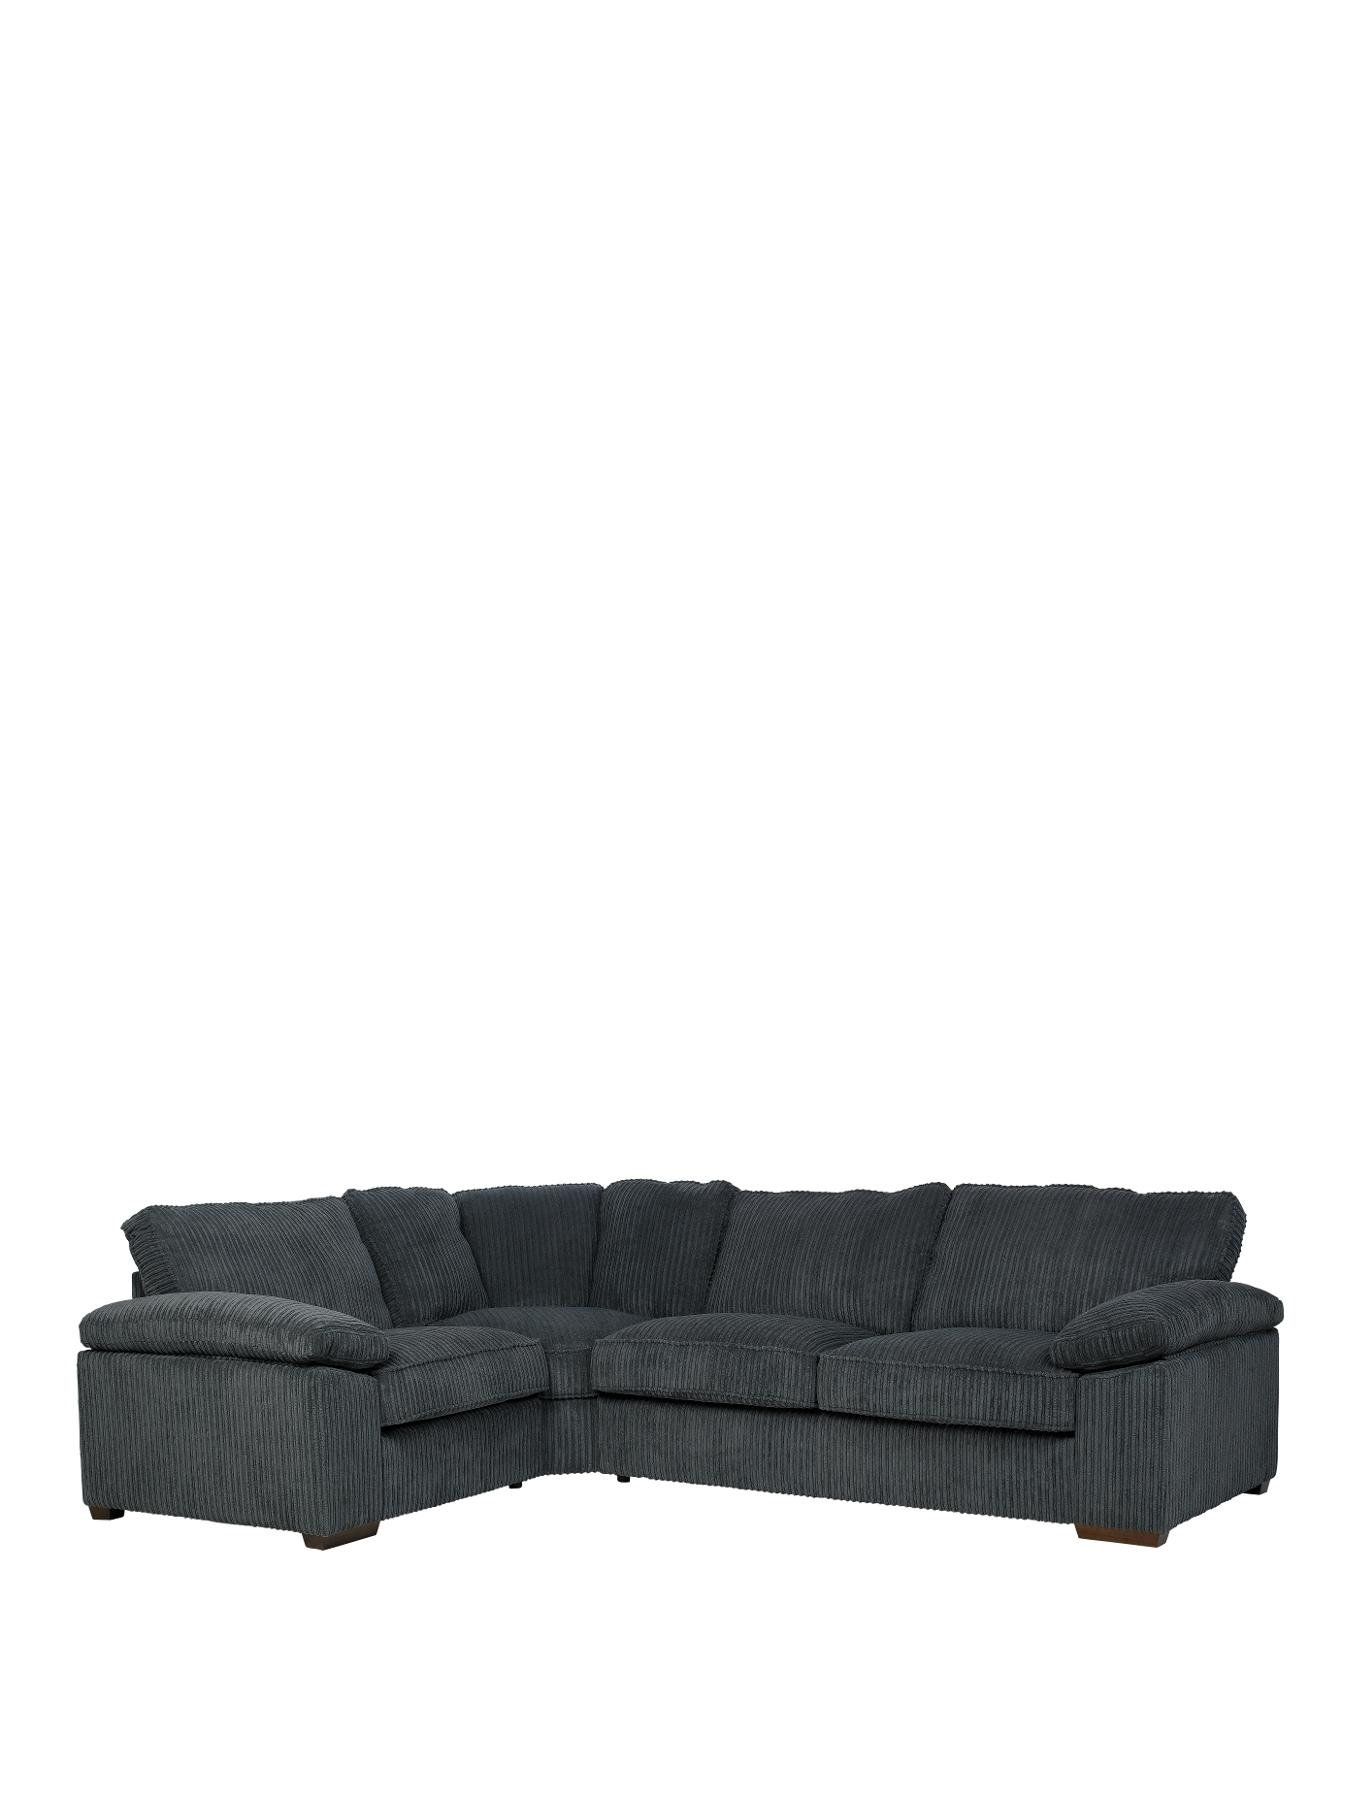 Gladstone Left-Hand Corner Group Sofa, Chocolate,Cream,Charcoal